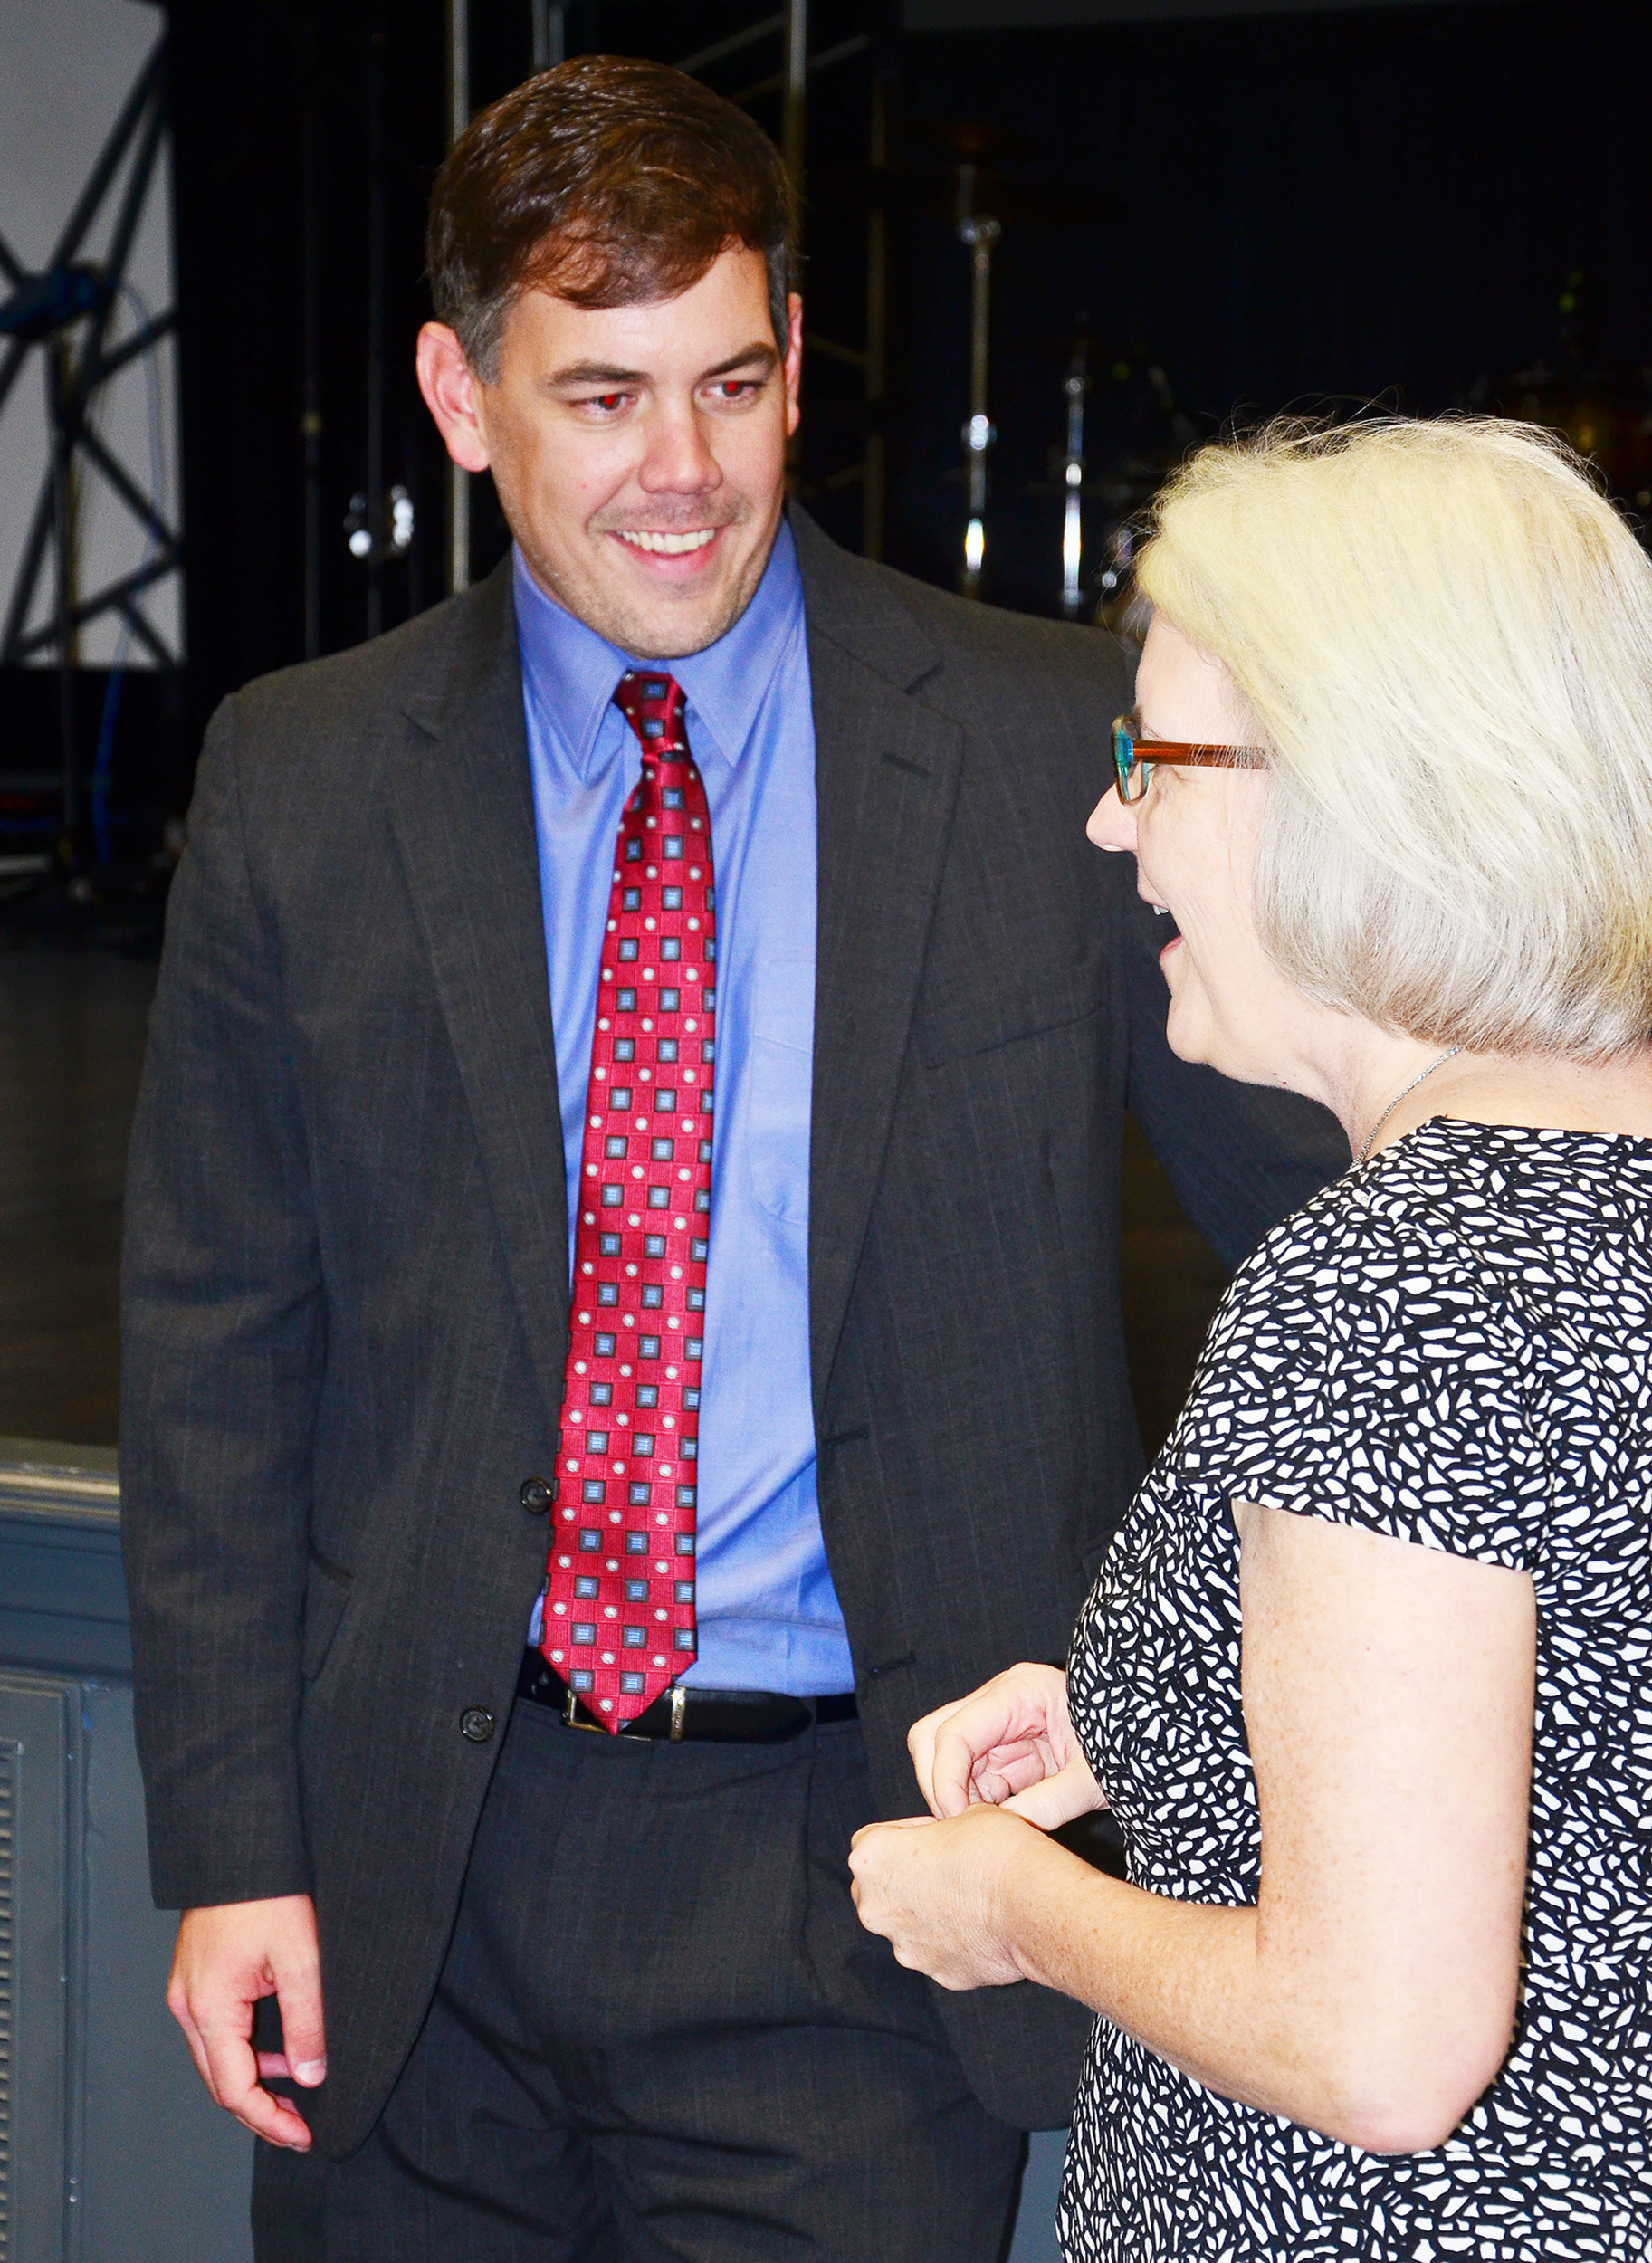 Andy Byars, a co-chair for the 2016 United Way campaign in Walker County, speaks with Connie Hill, CEO of Girls Inc., after the United Way kickoff meeting Thursday at the Jasper Civic Center.  Daily Mountain Eagle - James Phillips